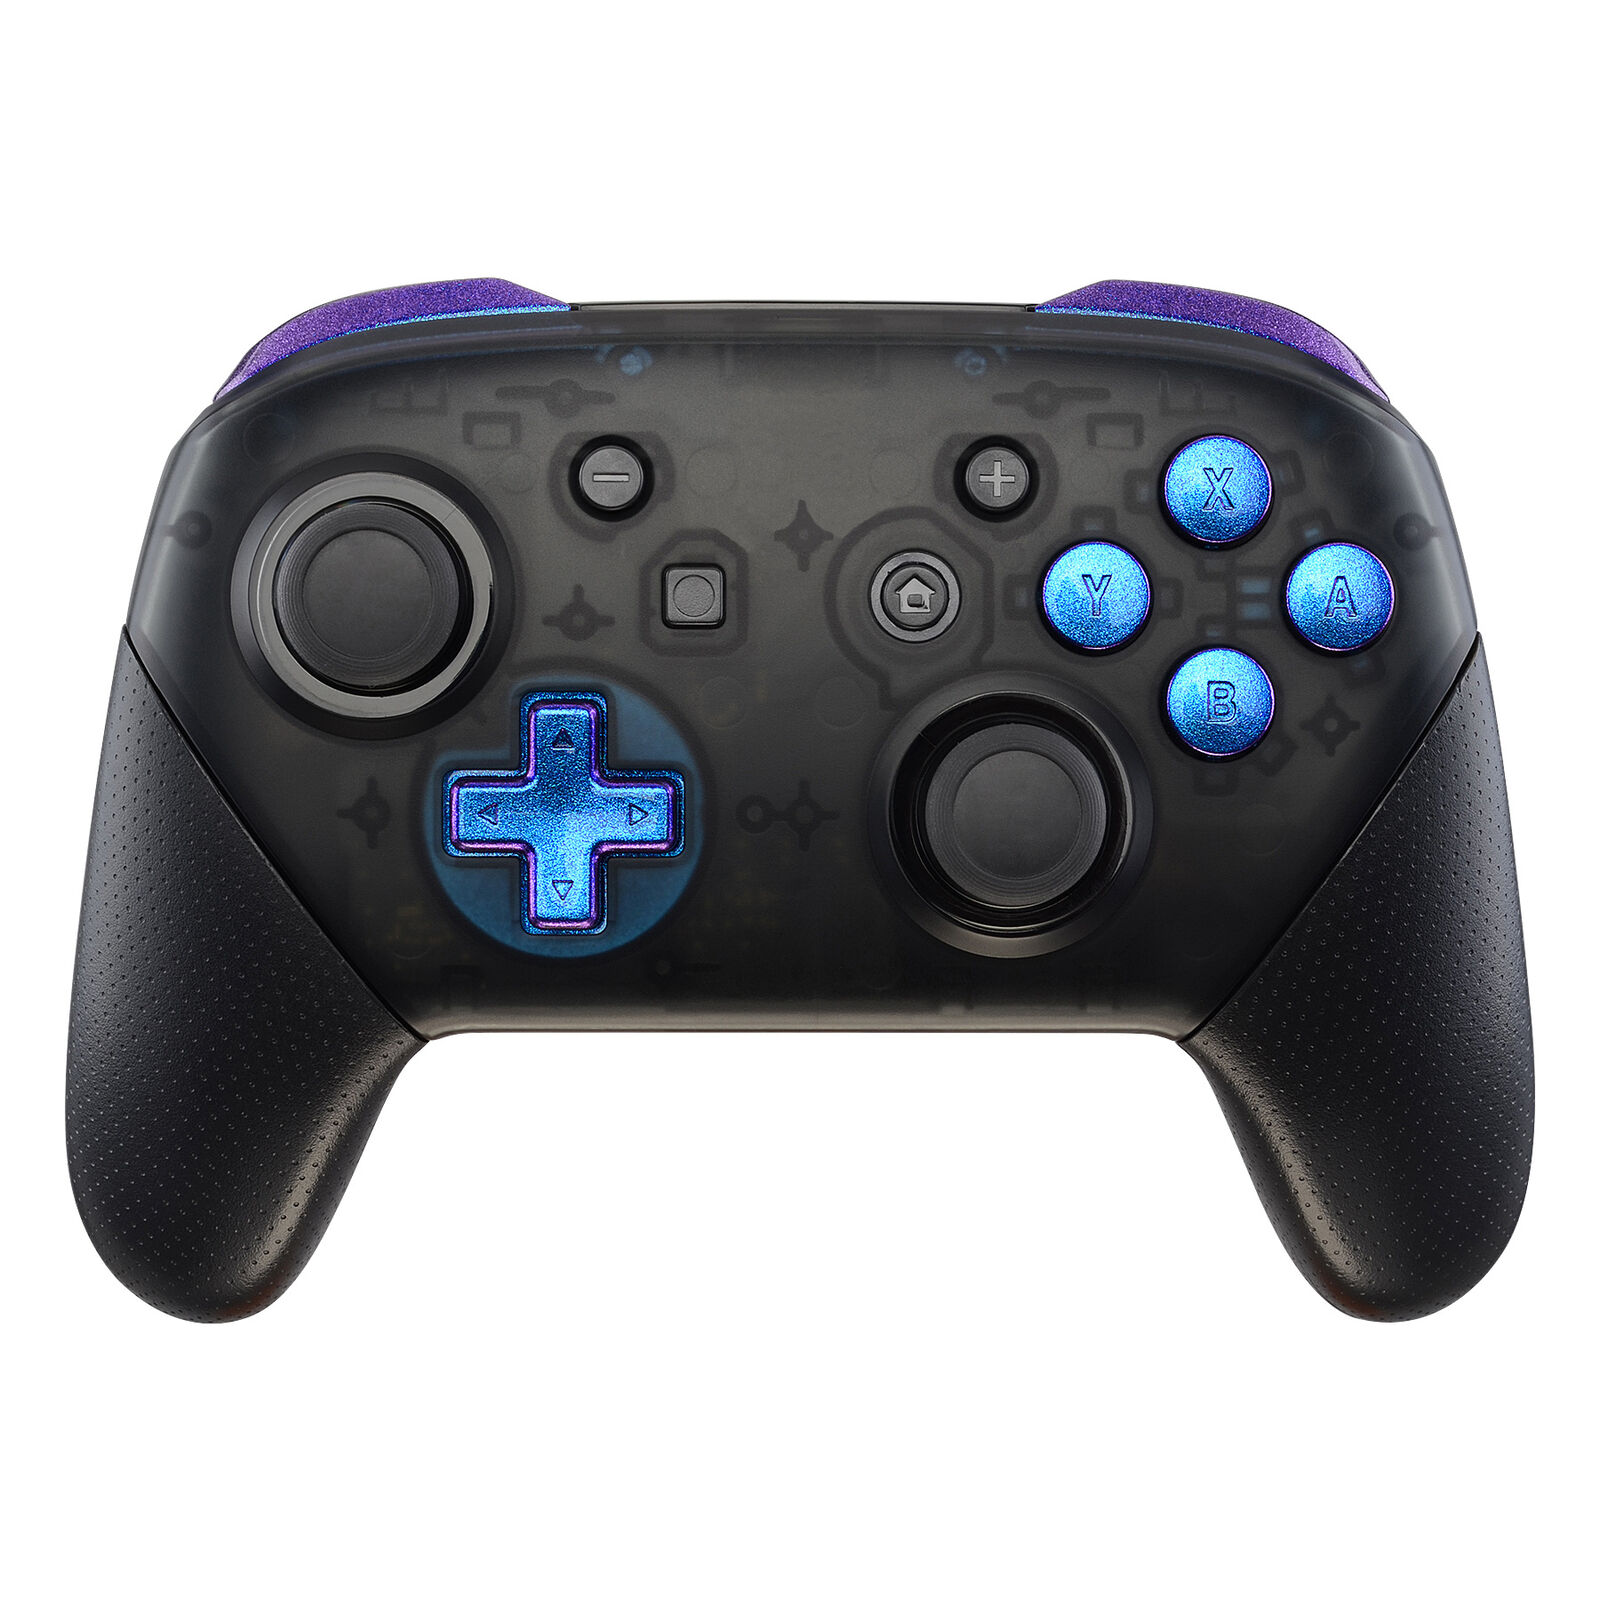 Nintendo Switch Pro Controller Black and Color Changing Buttons